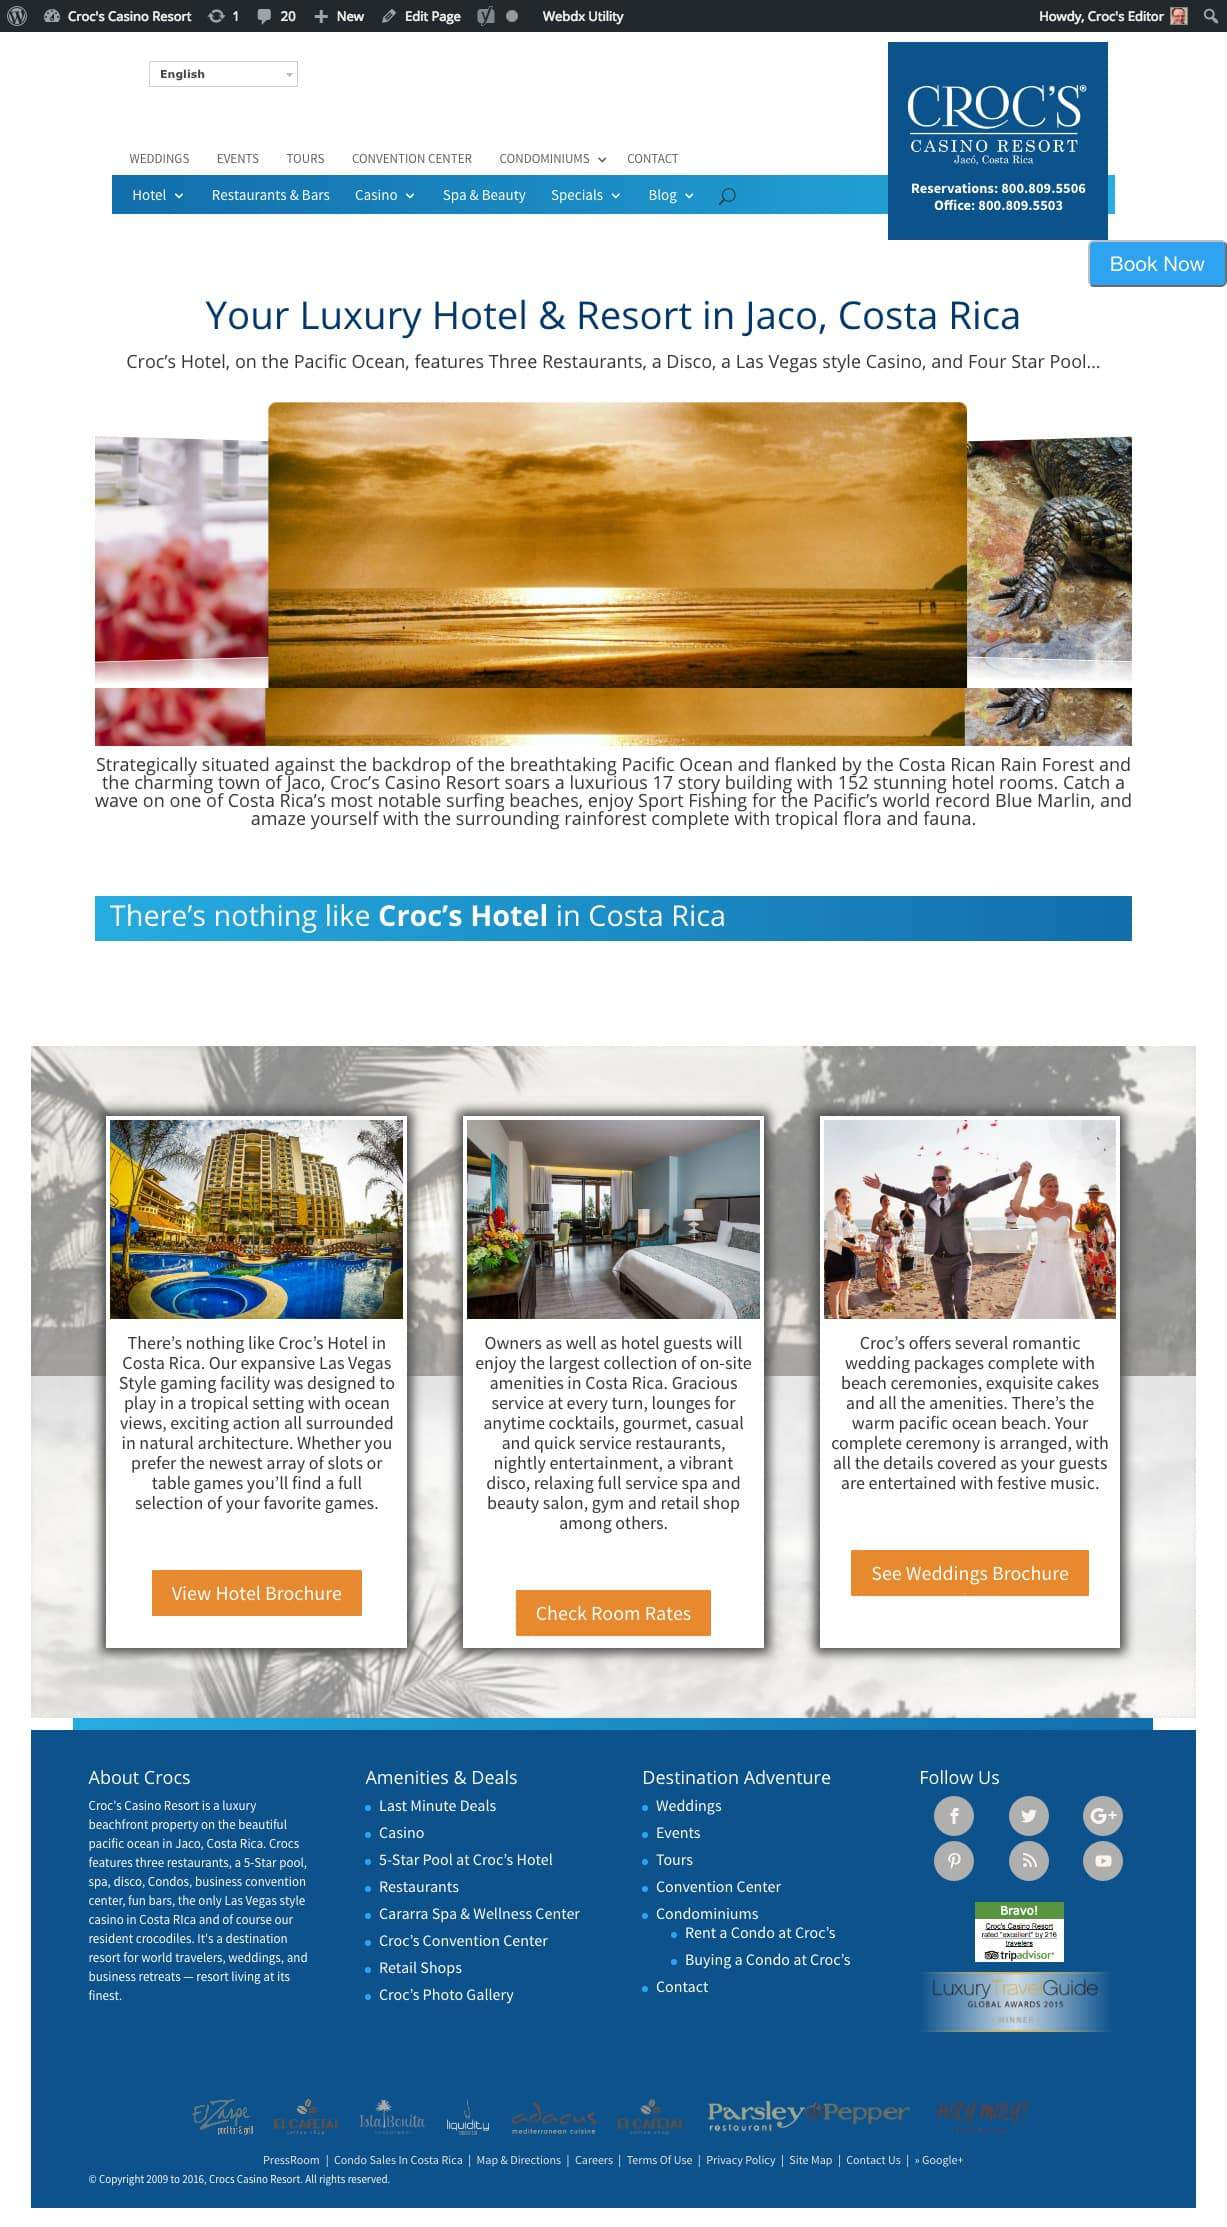 Croc's Resort Services Pro Hotel Website with Booking Solution 4